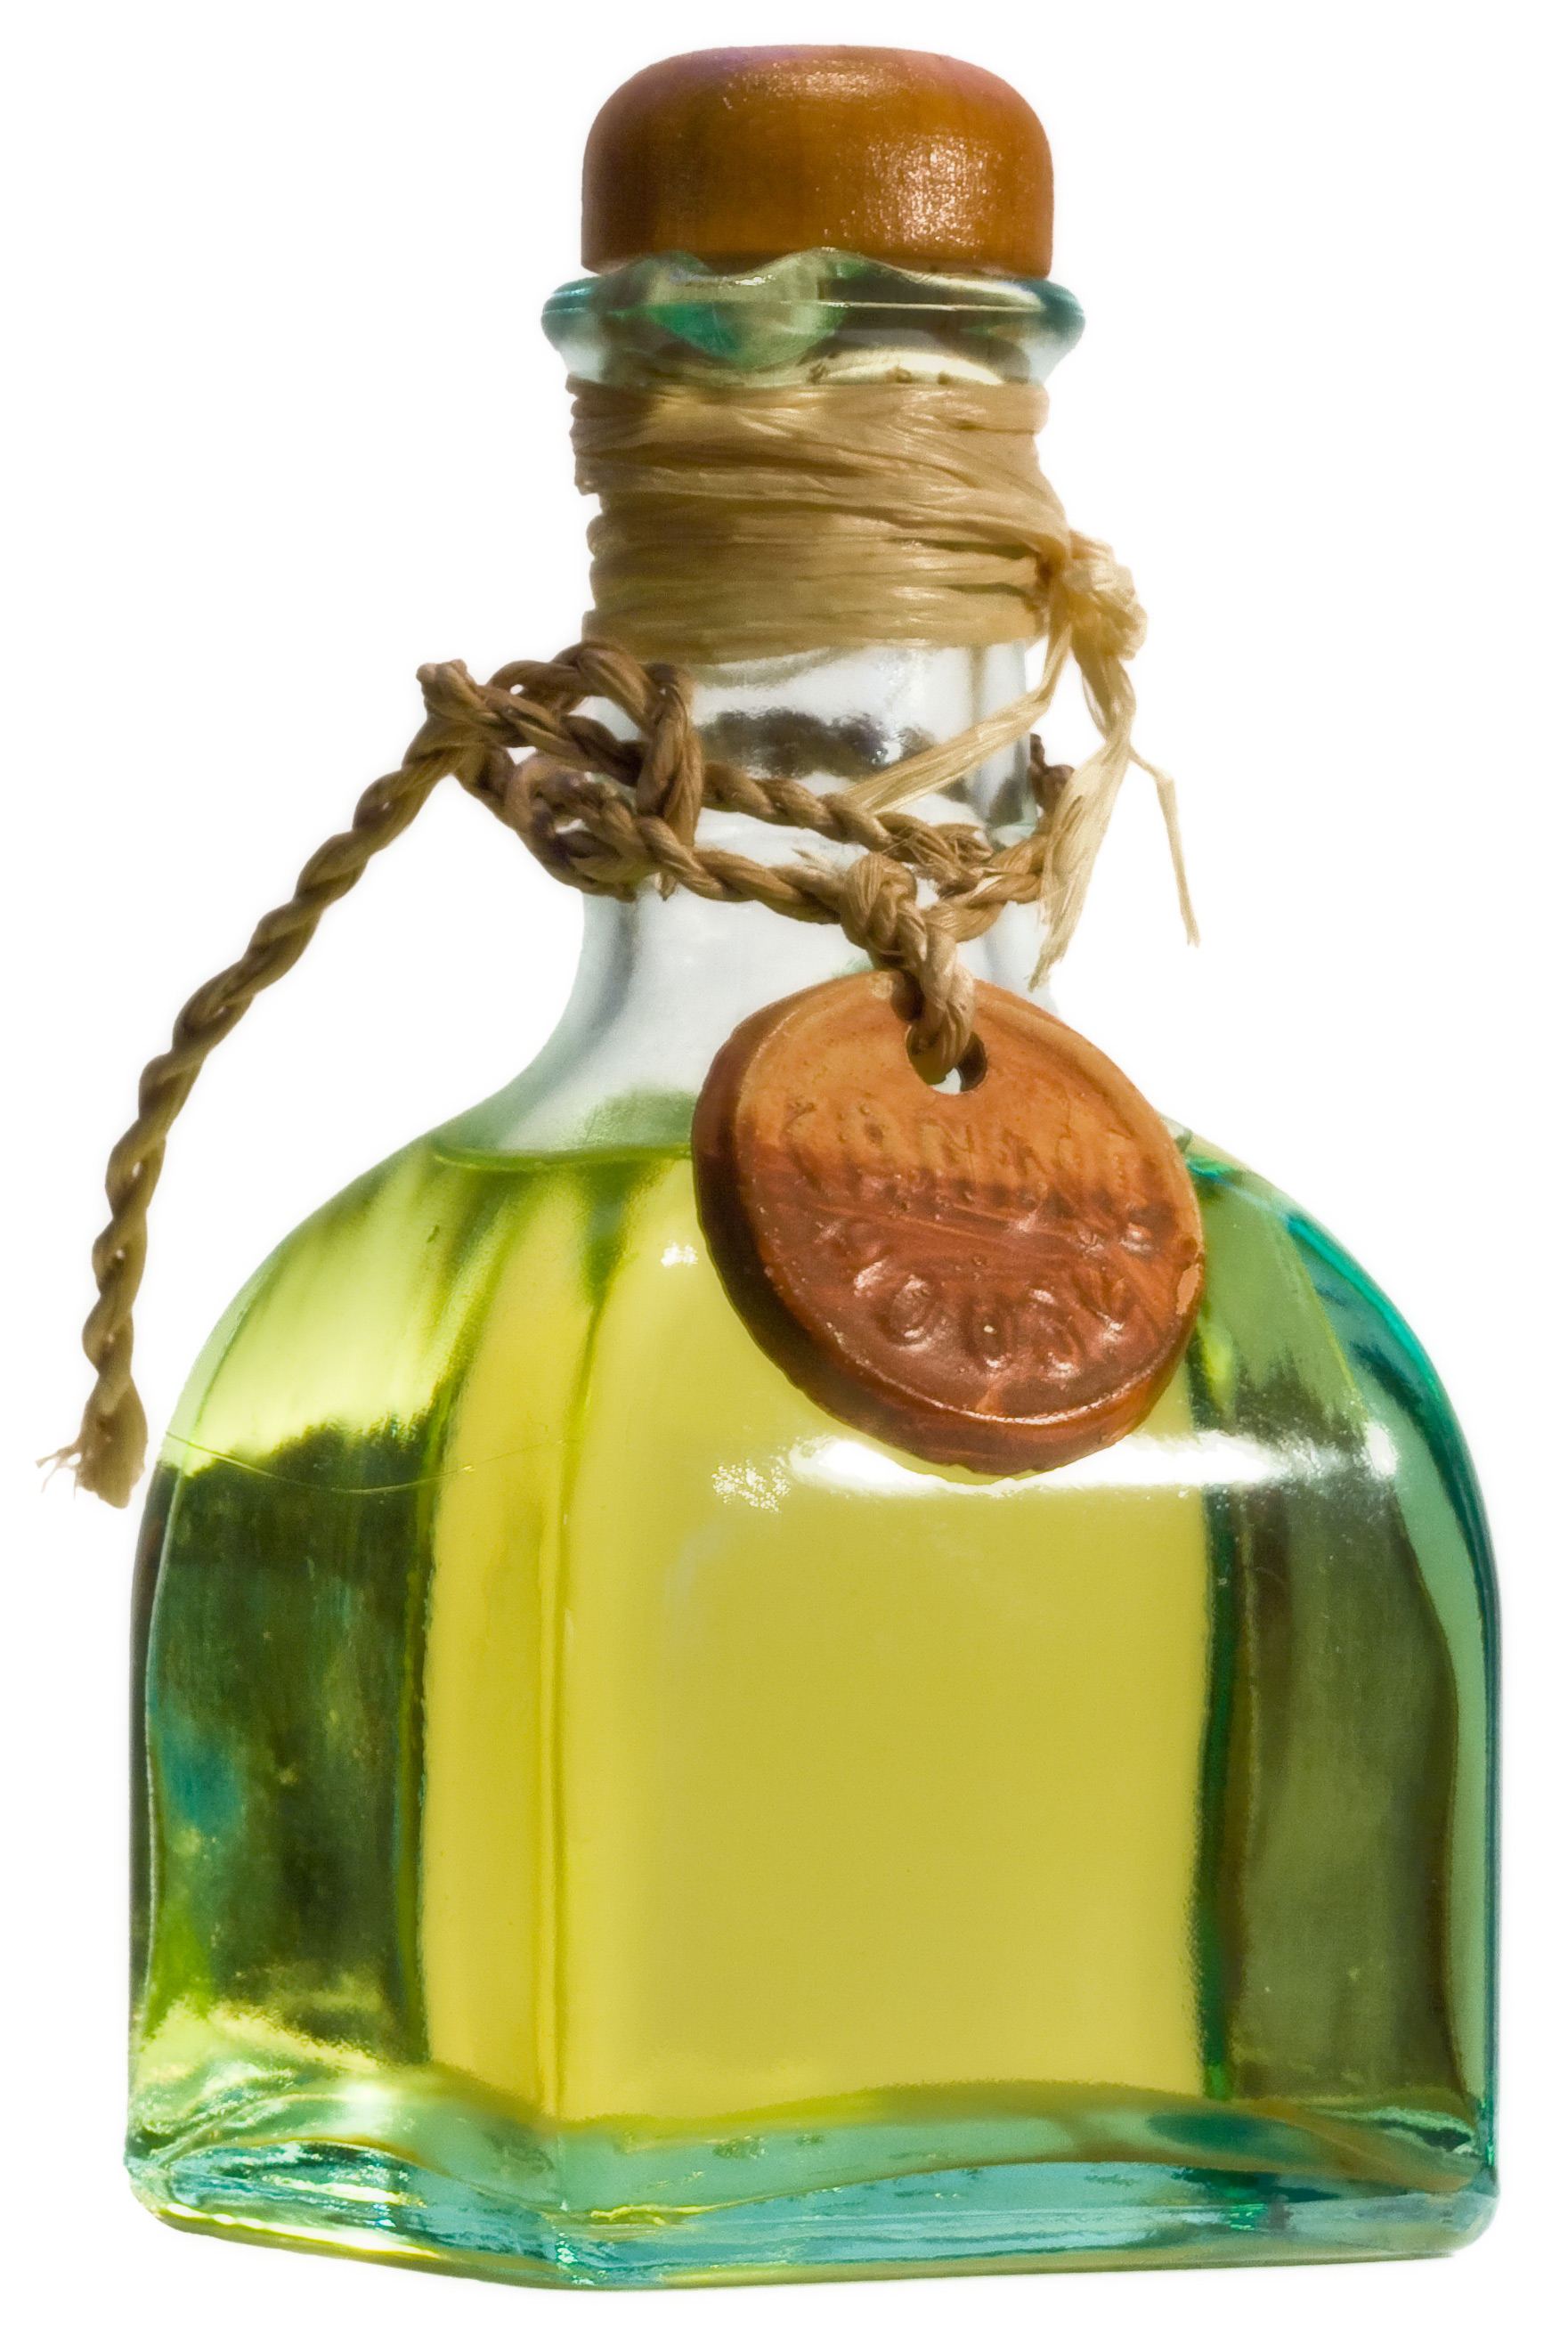 Peanut Oil and Tree Nut Oil in Skin Care Products